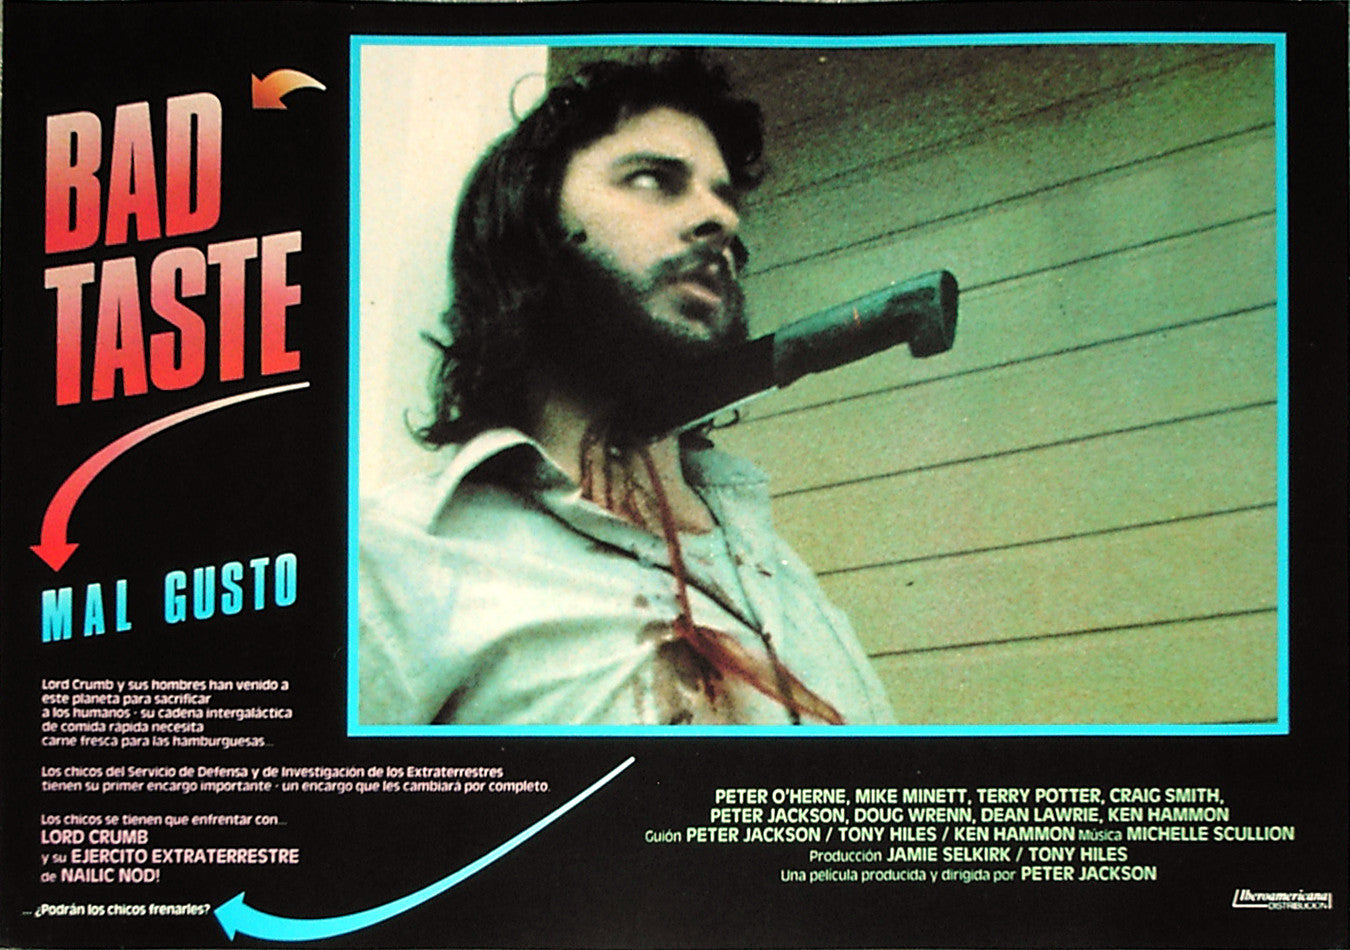 BAD TASTE - Spanish lobby card v2